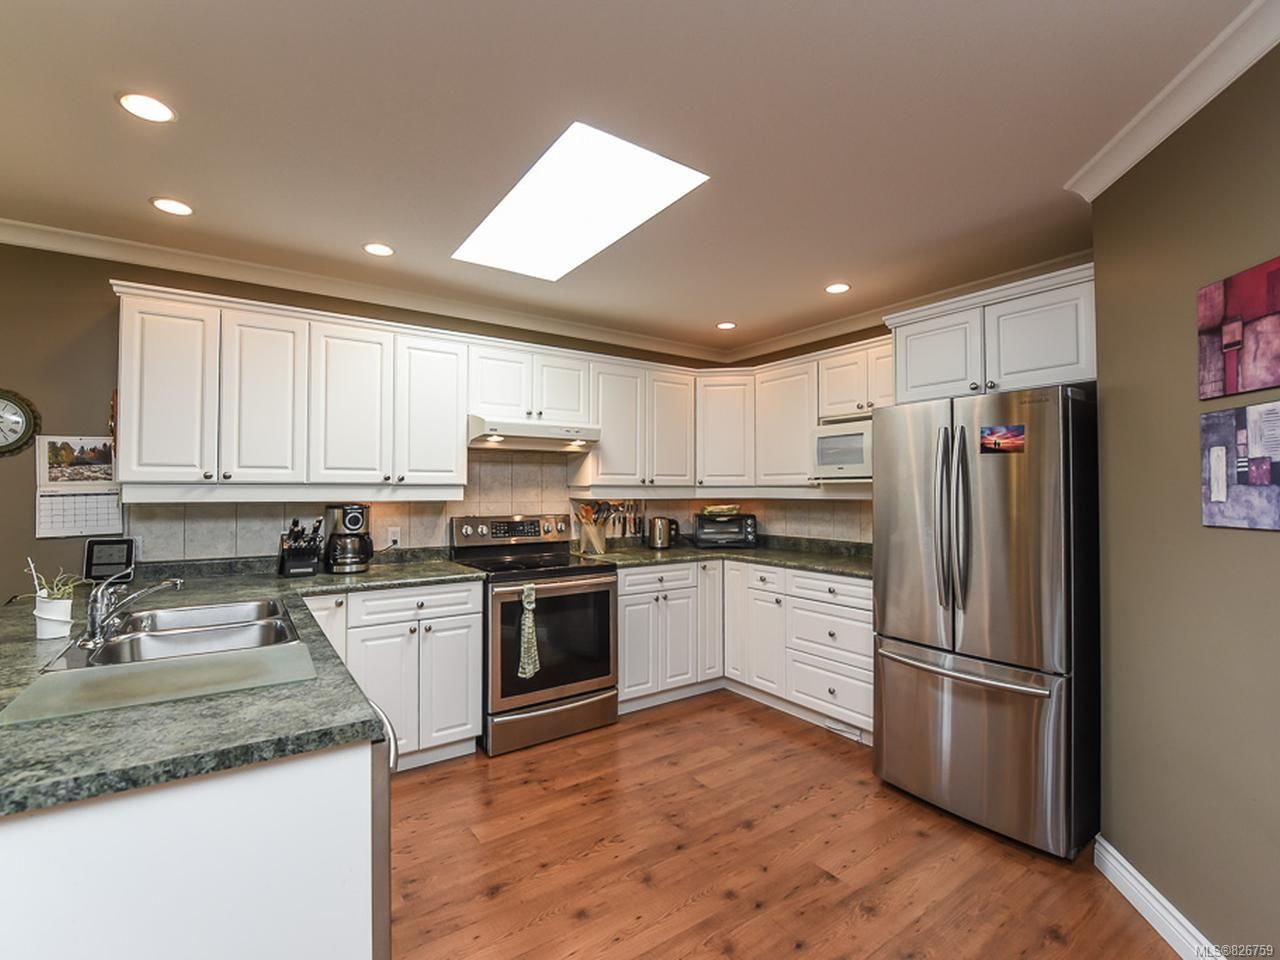 Photo 9: Photos: 2165 Stirling Cres in COURTENAY: CV Courtenay East House for sale (Comox Valley)  : MLS®# 826759